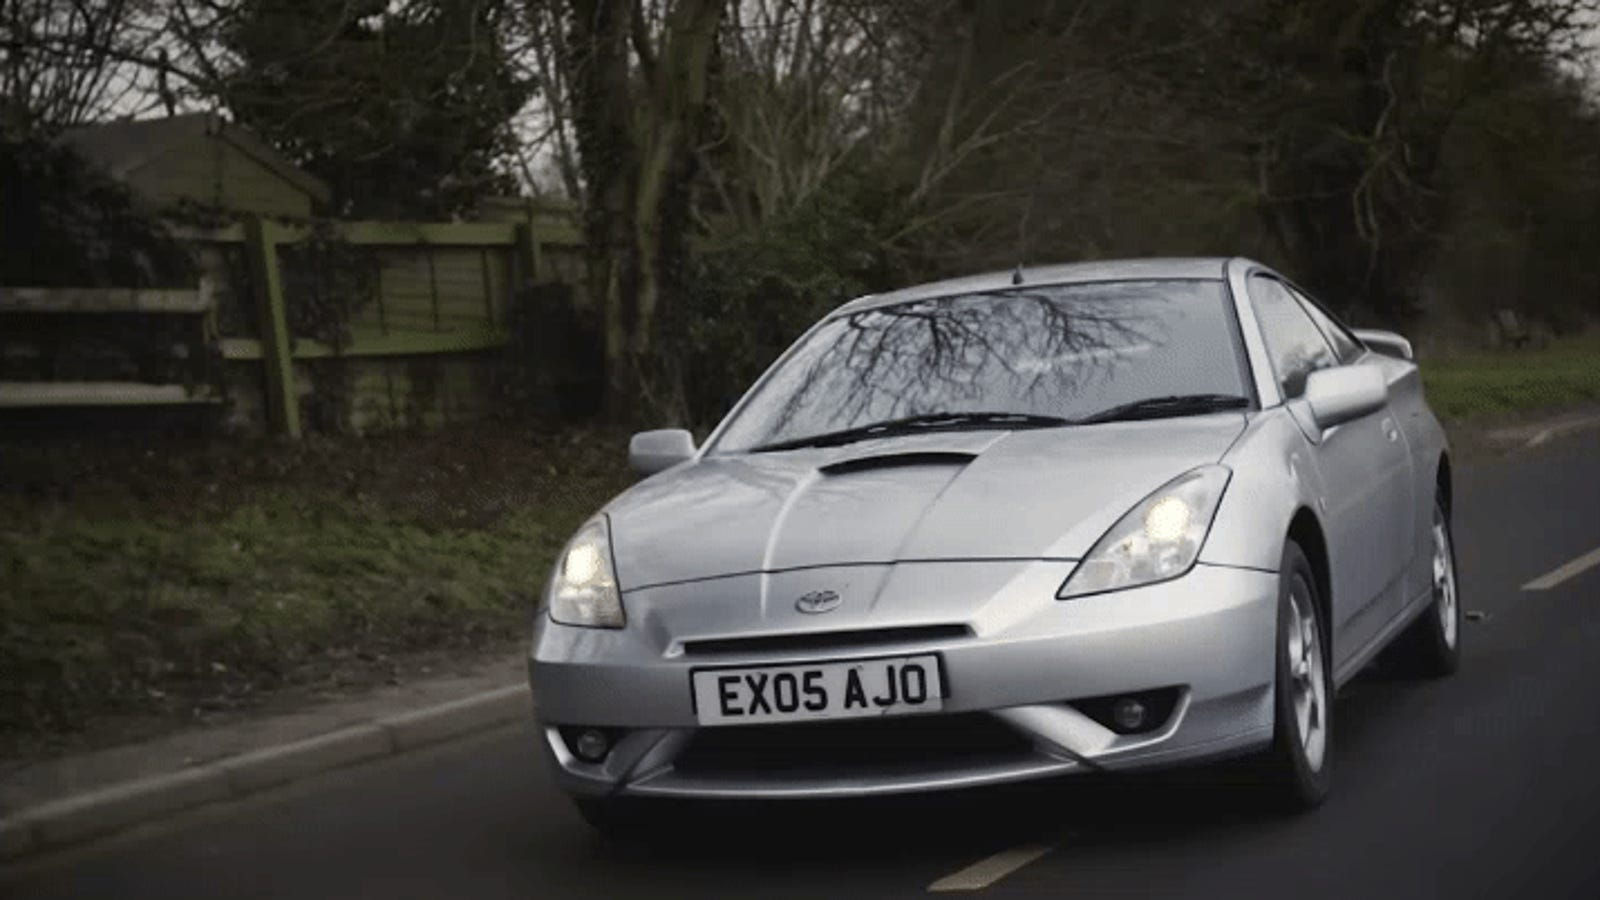 The Last Toyota Celica Is A Killer Used Car Bargain